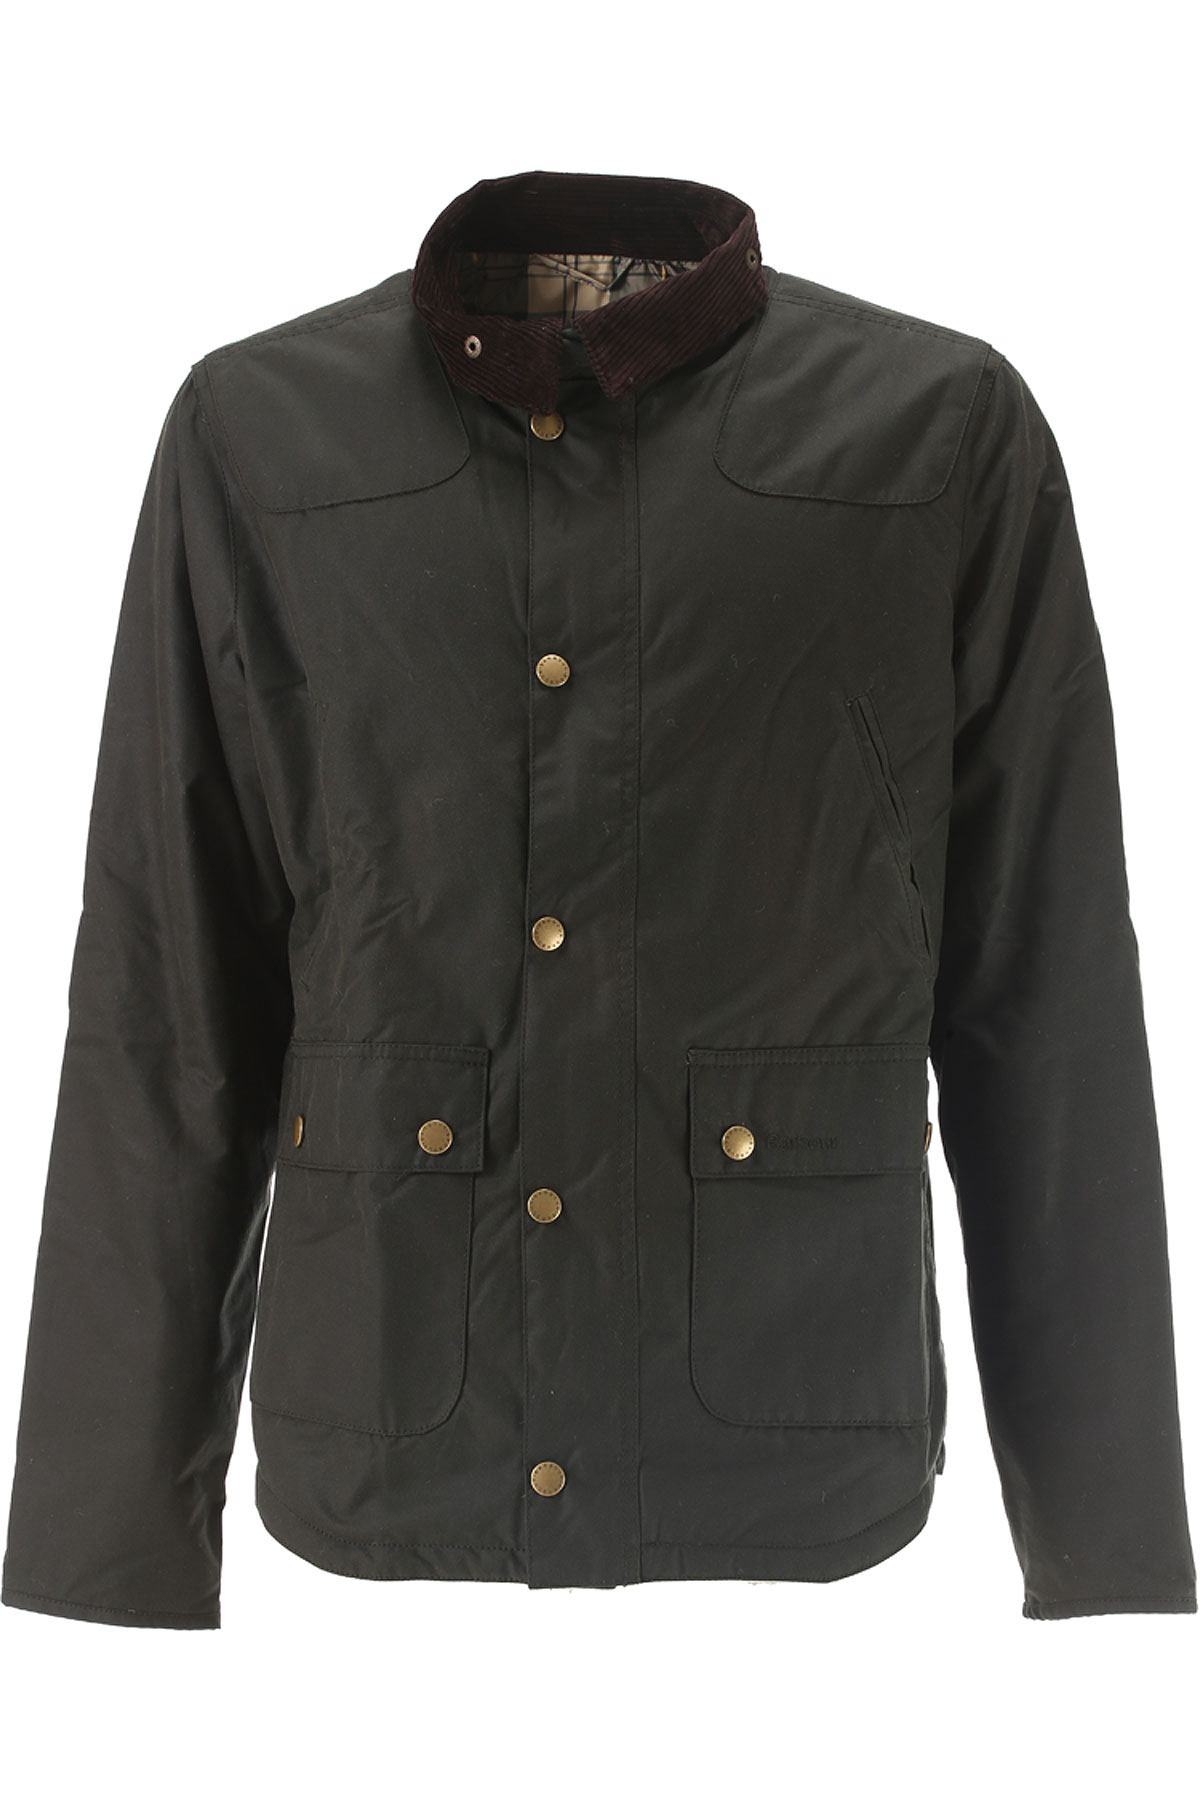 Image of Barbour Jacket for Men, Dark Bottle Green, Waxed Cotton, 2017, L M